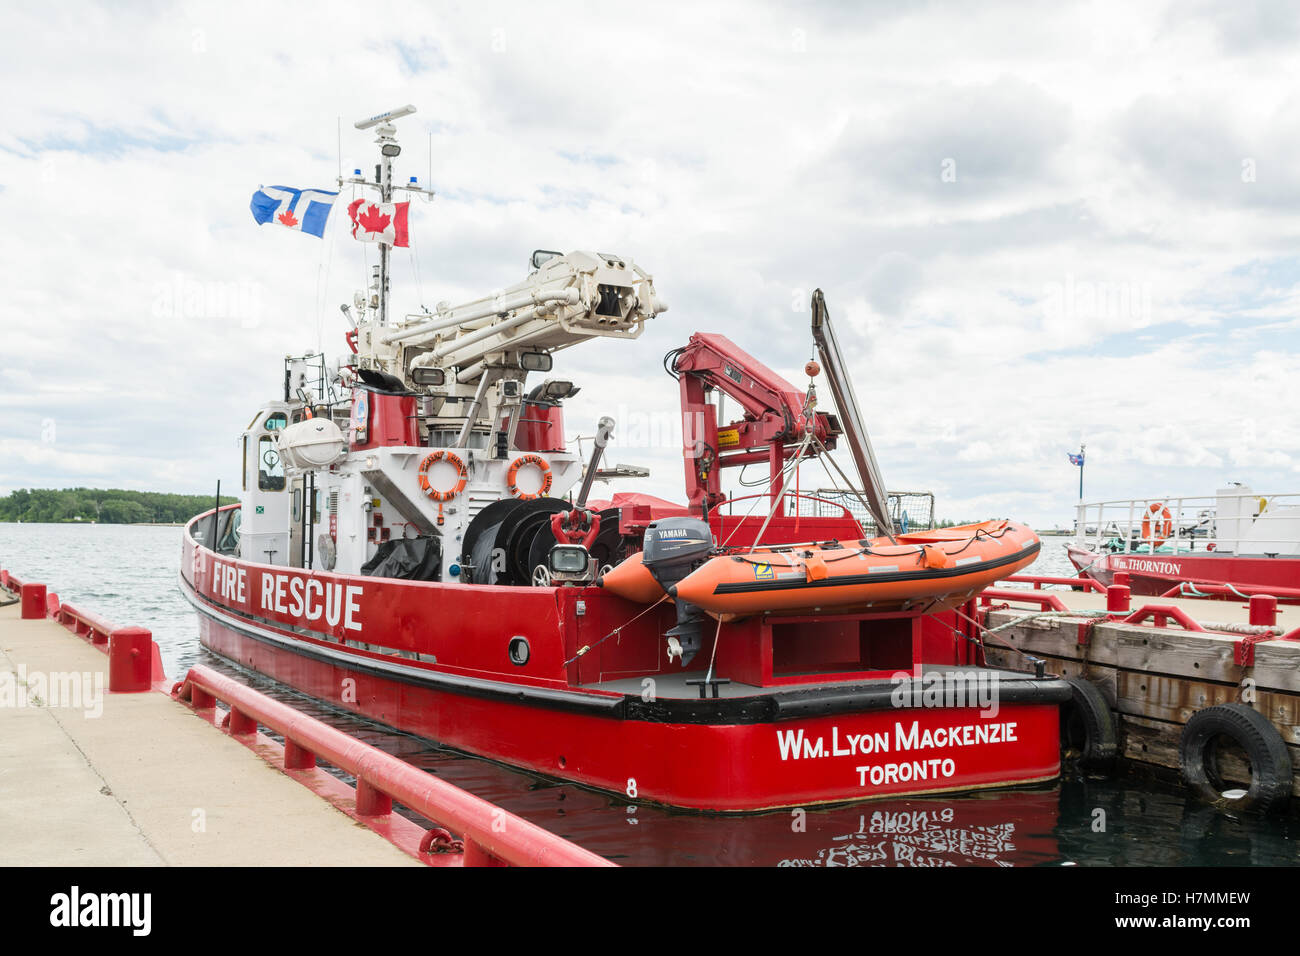 Fire Rescue boat and ice breaker - William Lyon Mackenzie - part of the Toronto fire service, Toronto, Ontario, - Stock Image